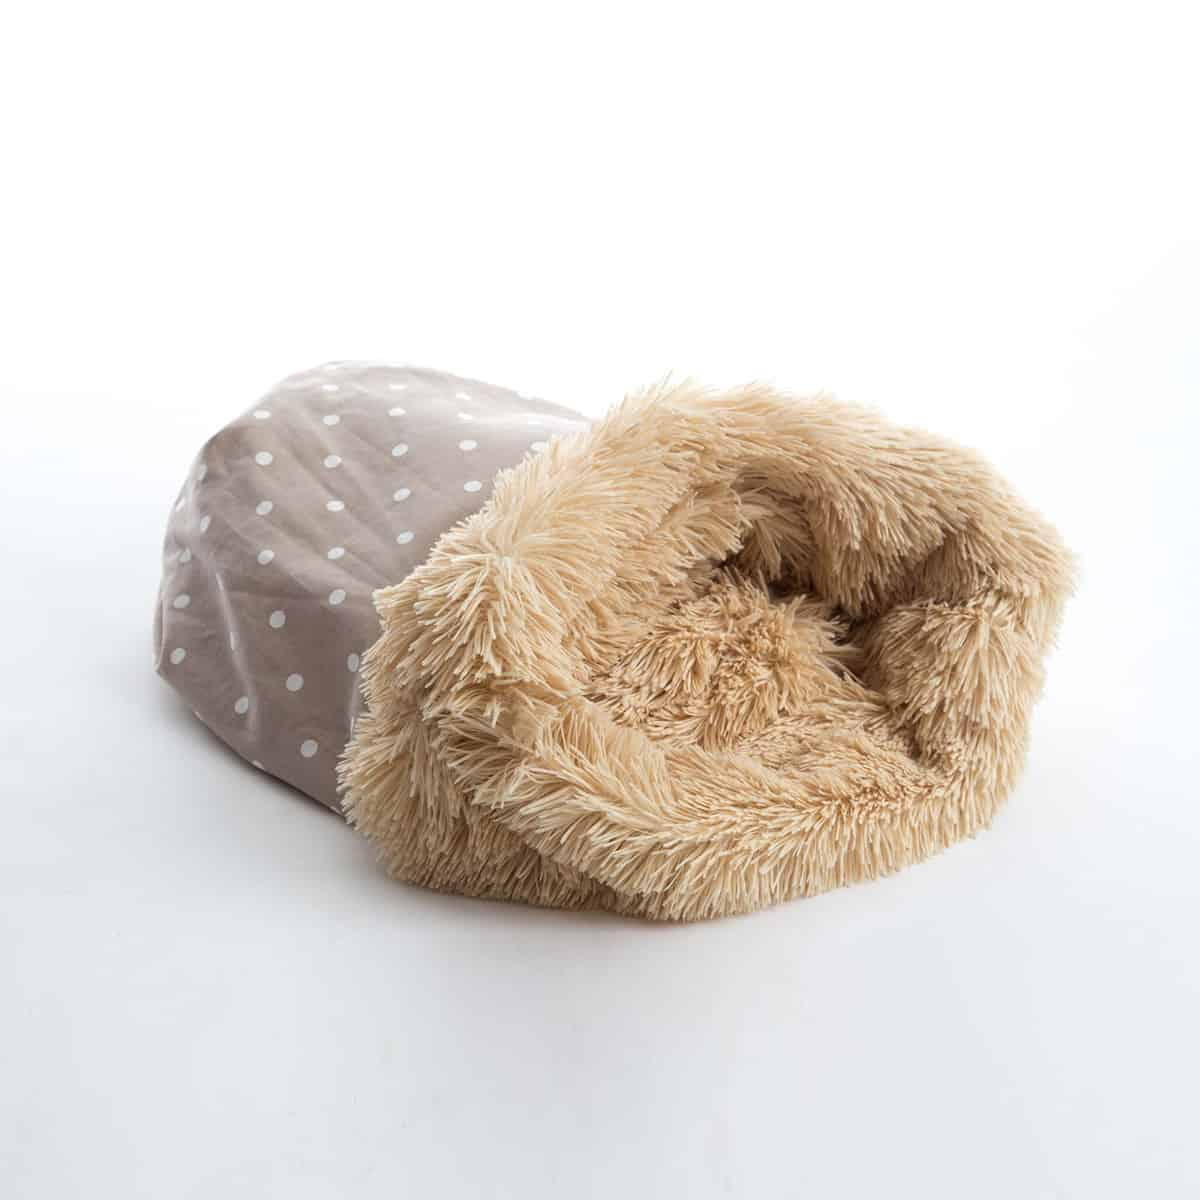 Dotty taupe and shaggy pile luxury dog sleeping bag